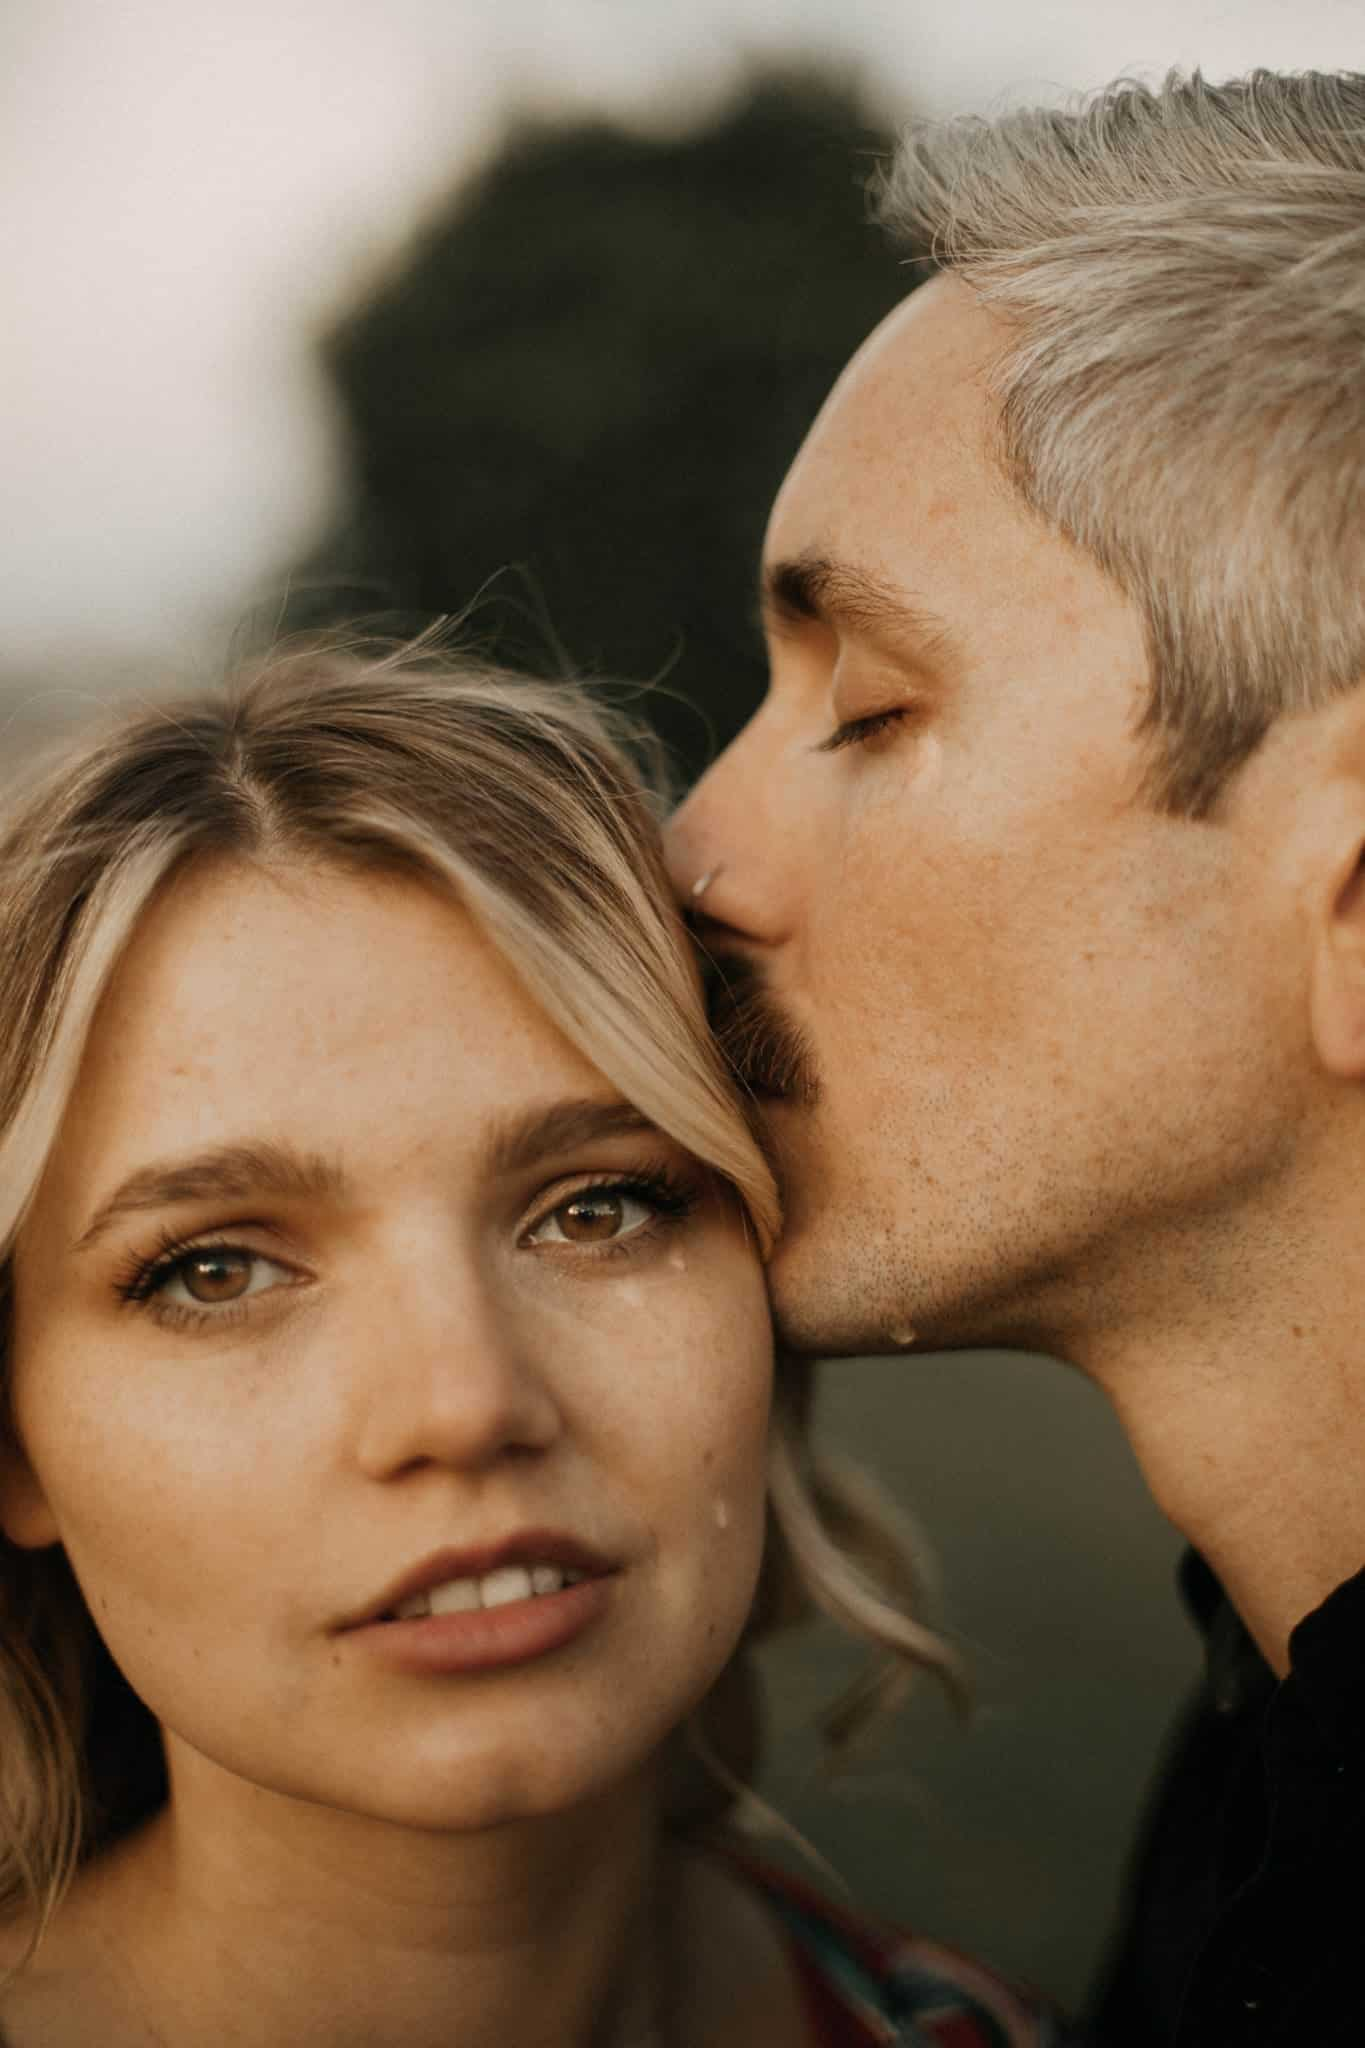 Close up of a man kissing his woman on her forehead